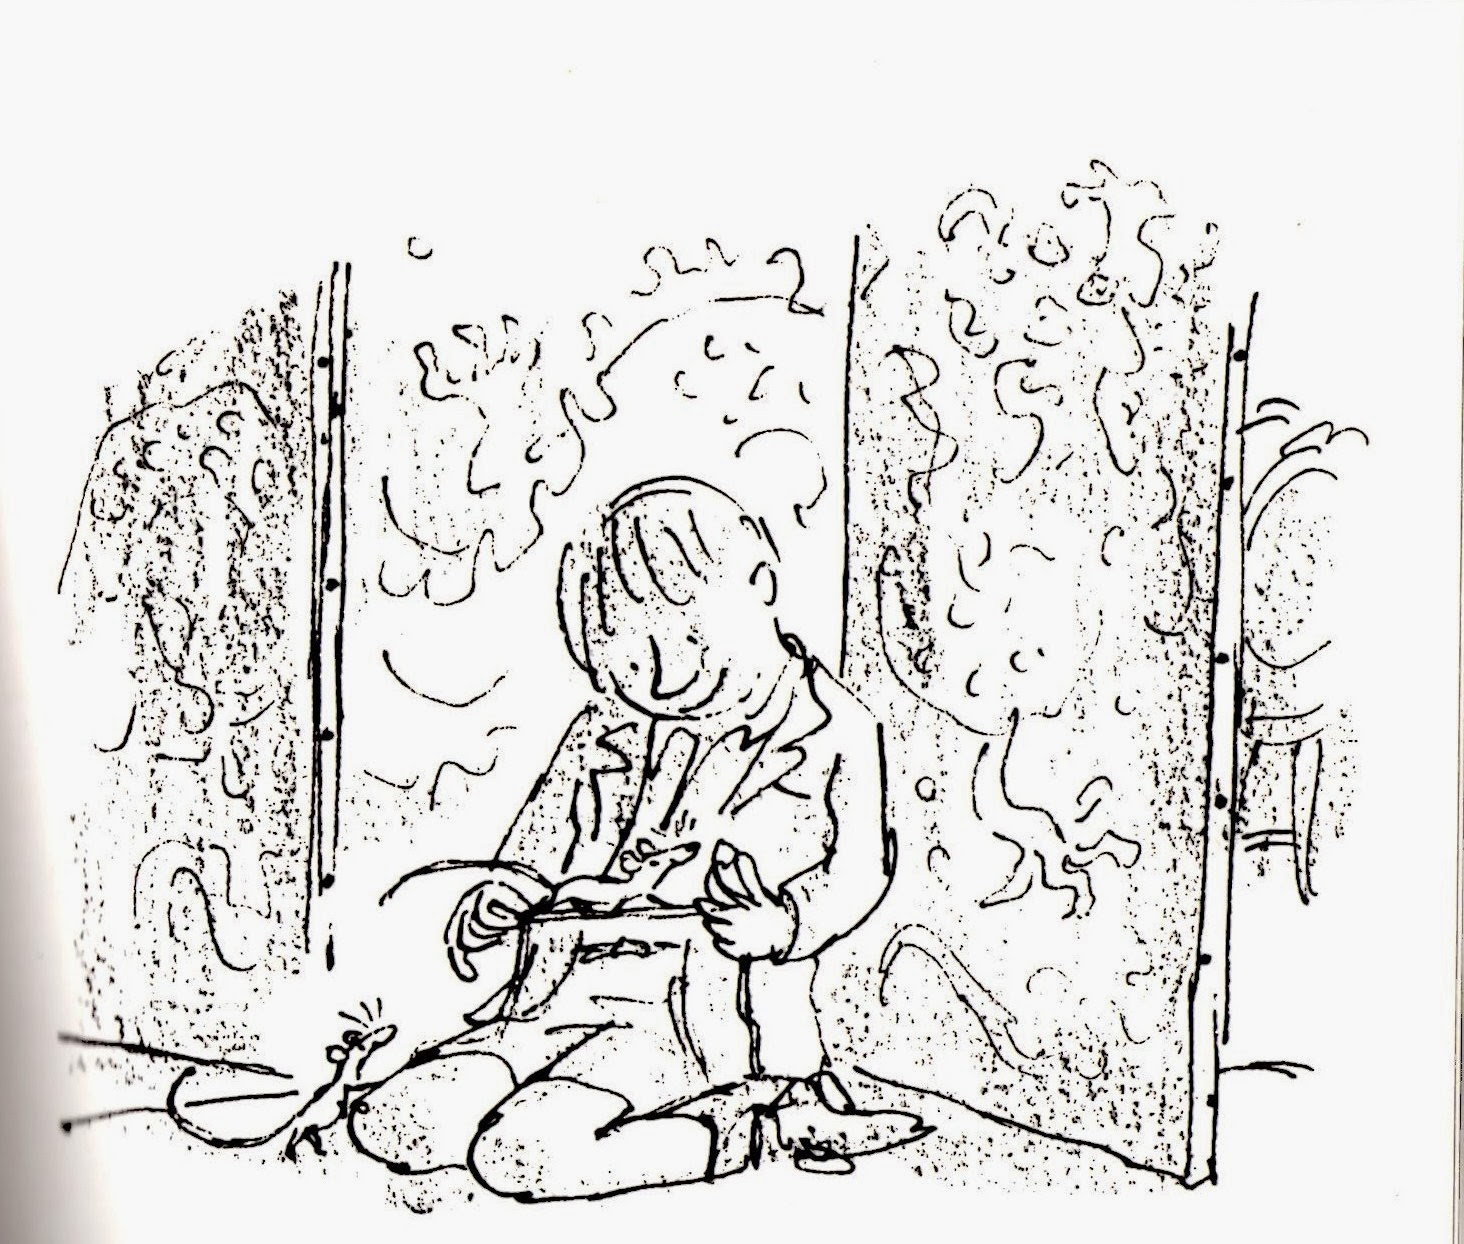 Chelsea Coils Illustration Roald Dahl The Witches